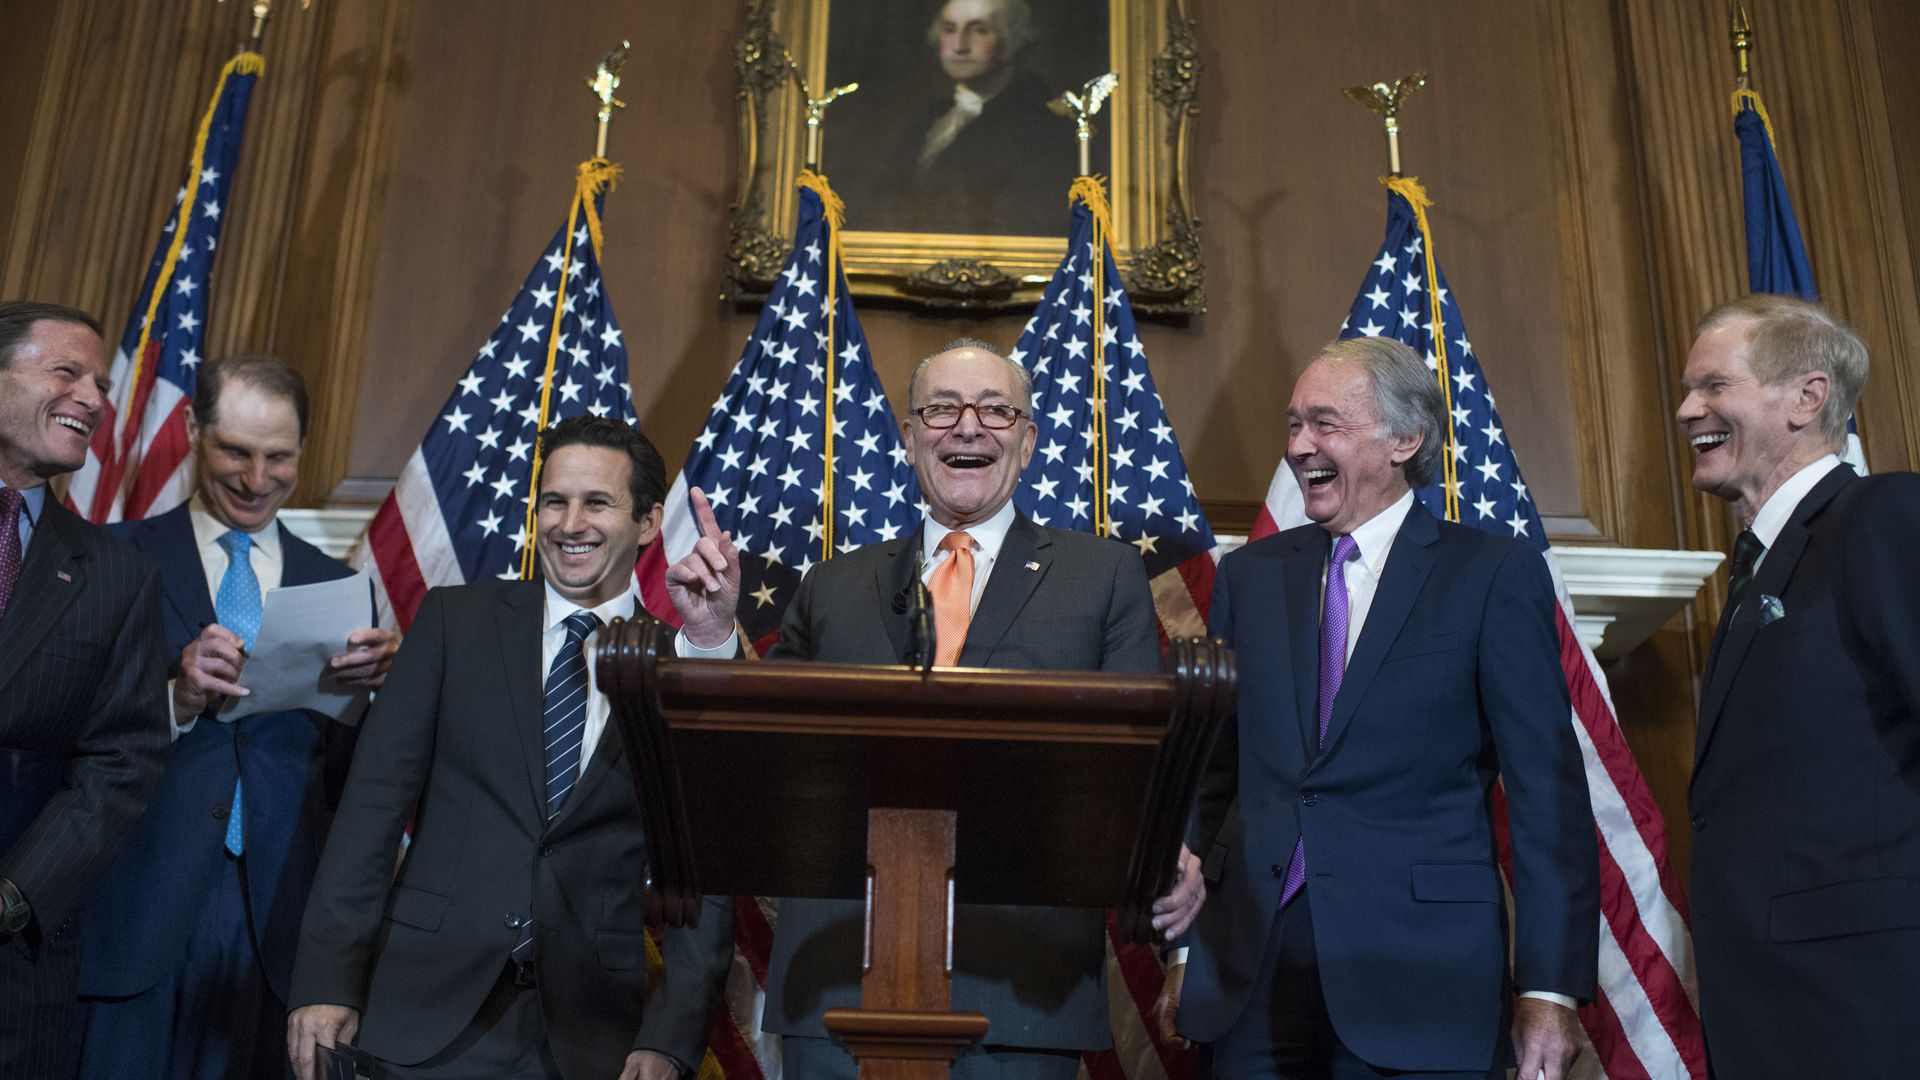 Sen. Chuck Schumer at a podium, surrounded by other Senate Democrats